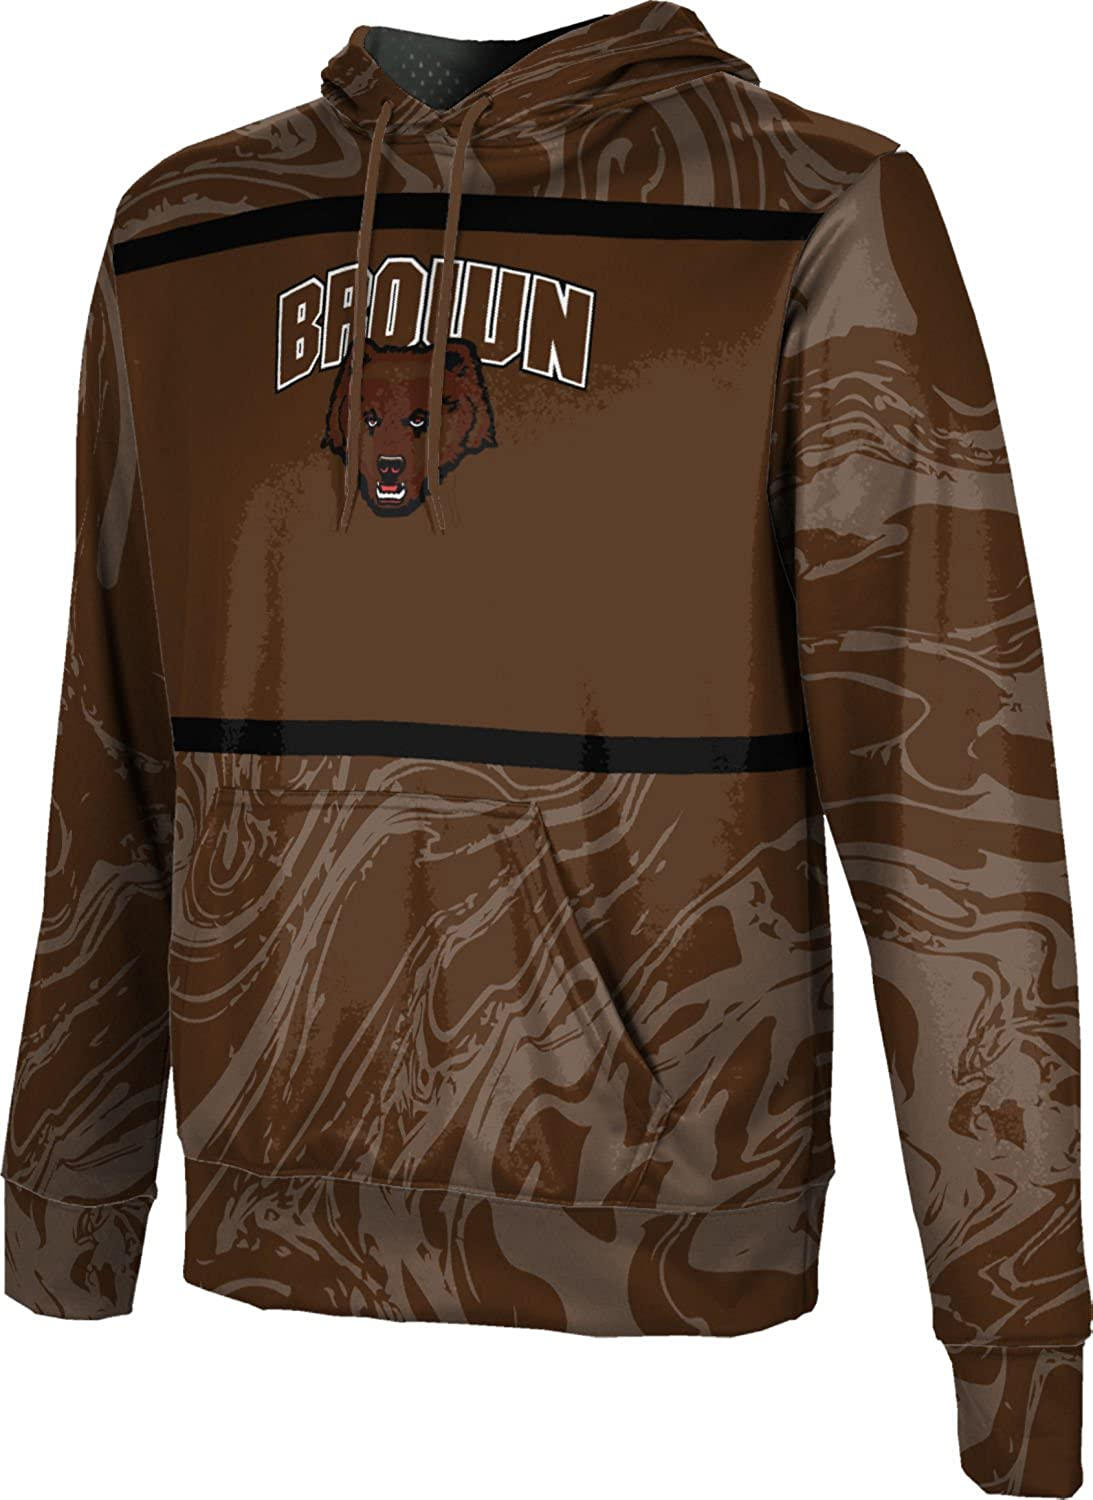 ProSphere Brown University Boys Hoodie Sweatshirt Ripple